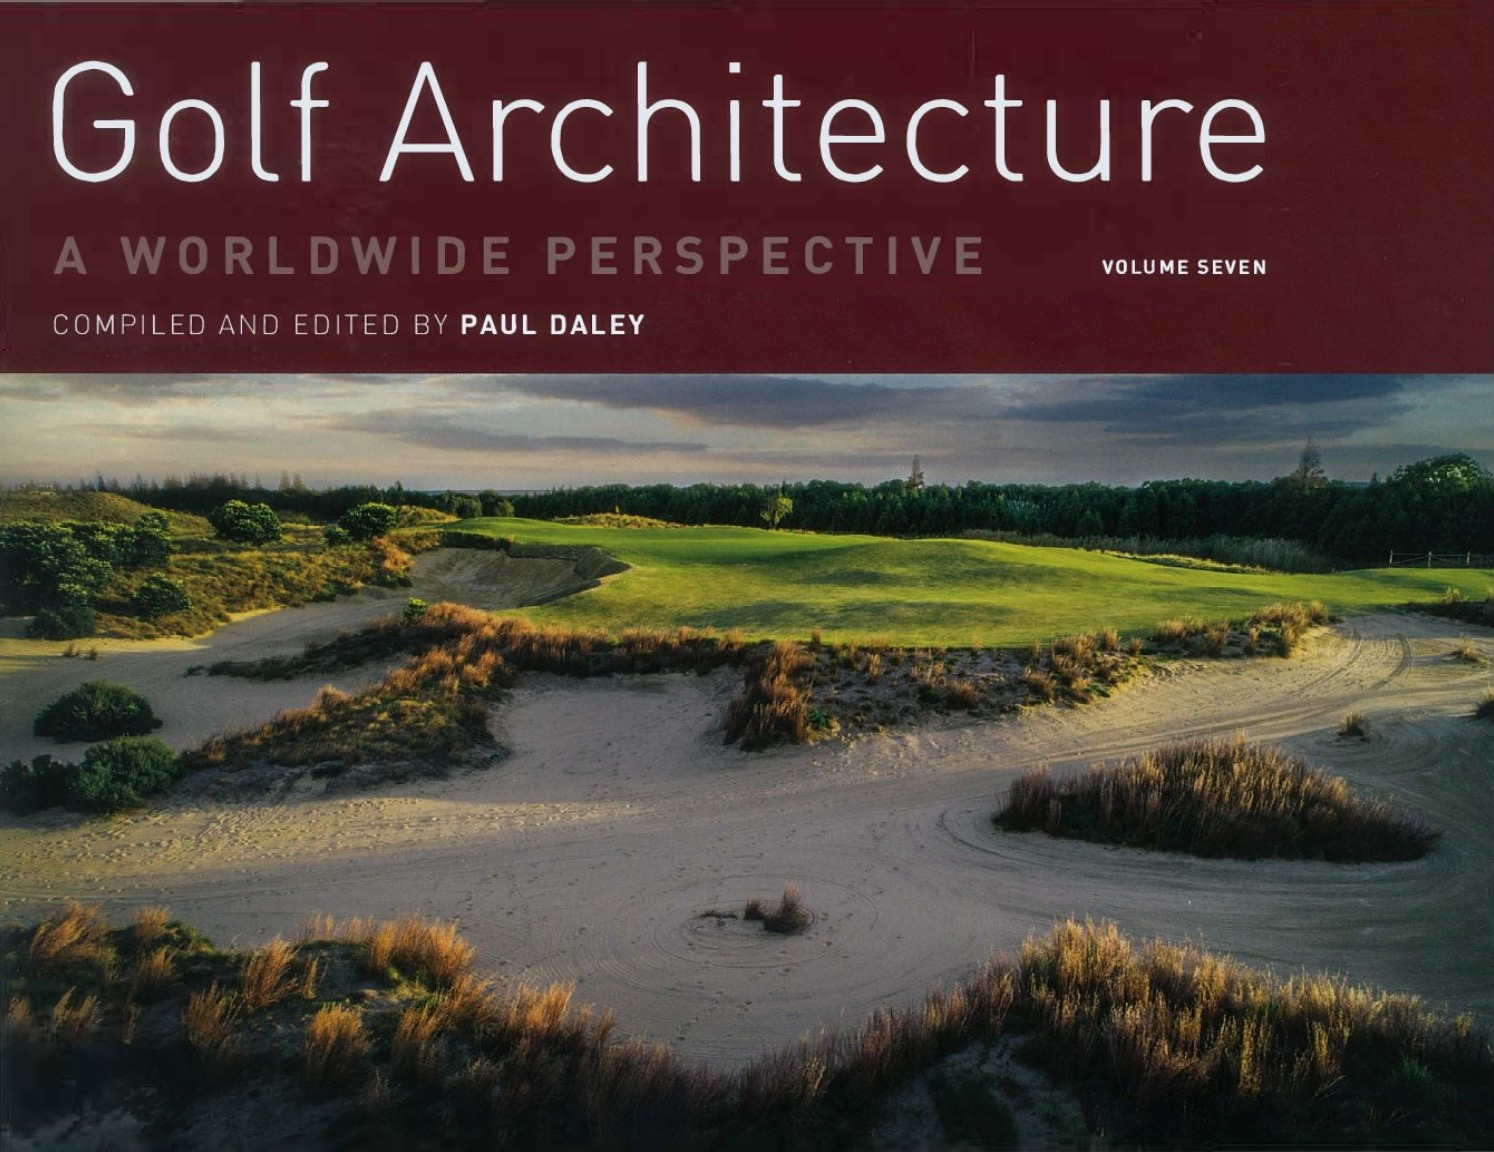 Golf Architecture: A Worldwide Perspective - Volume 7 - Cover Image